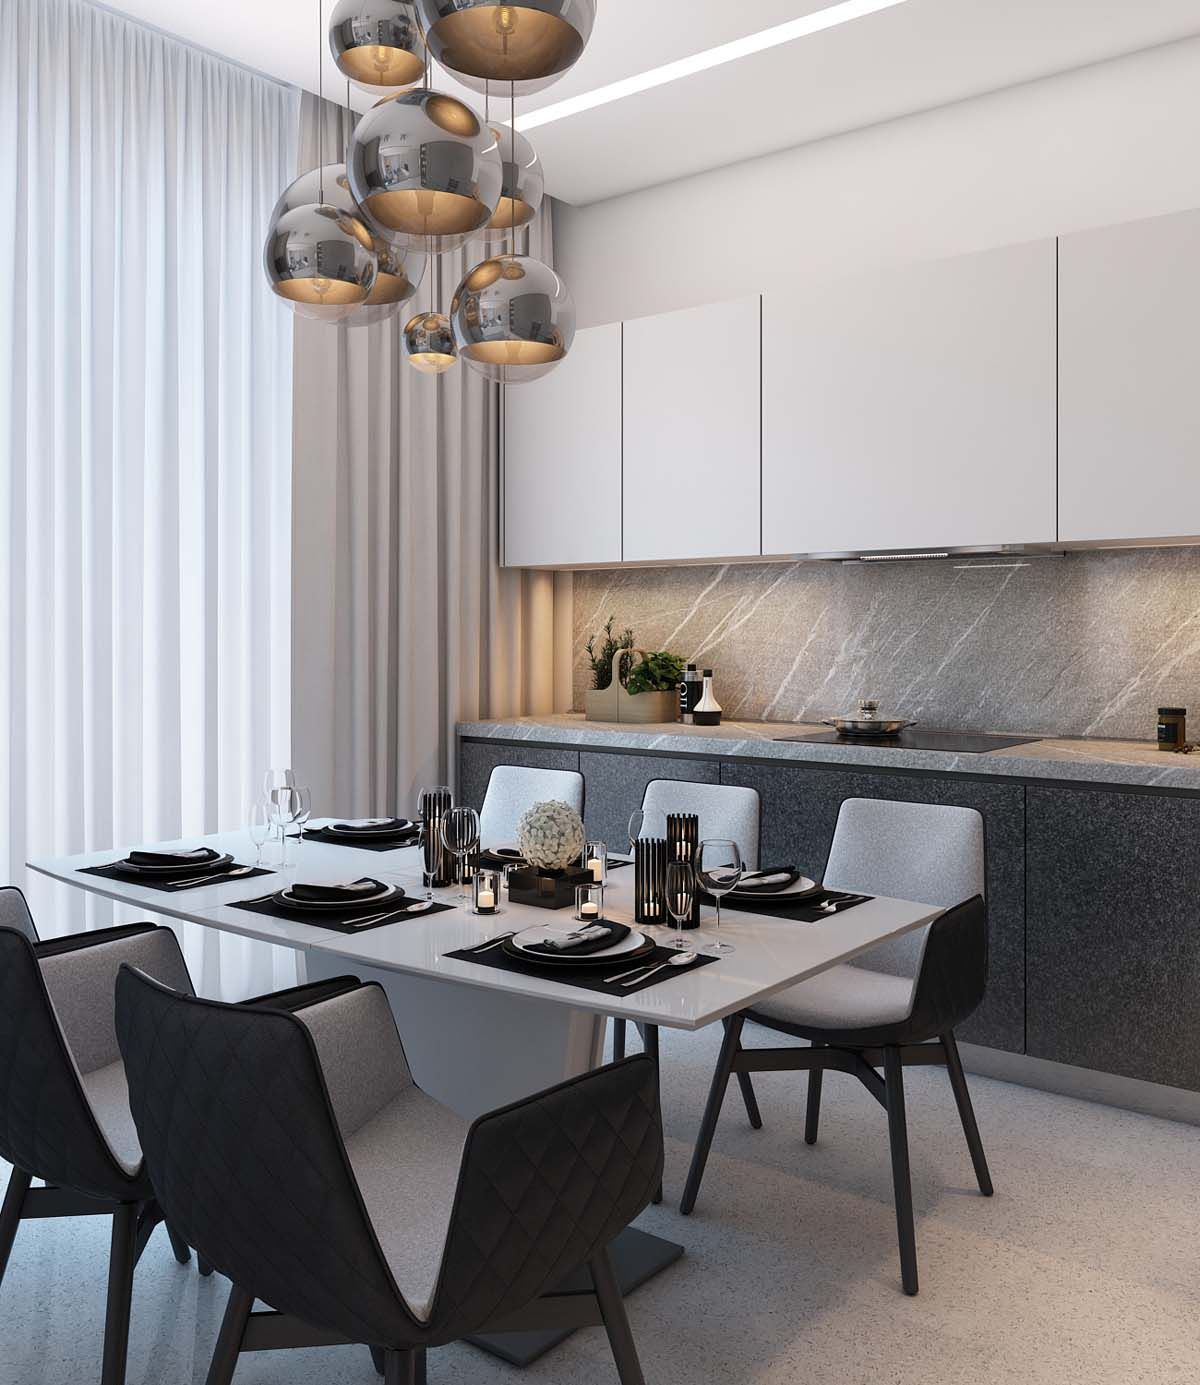 Simple Dining Room Design: A Simple, Modern Apartment In Moscow